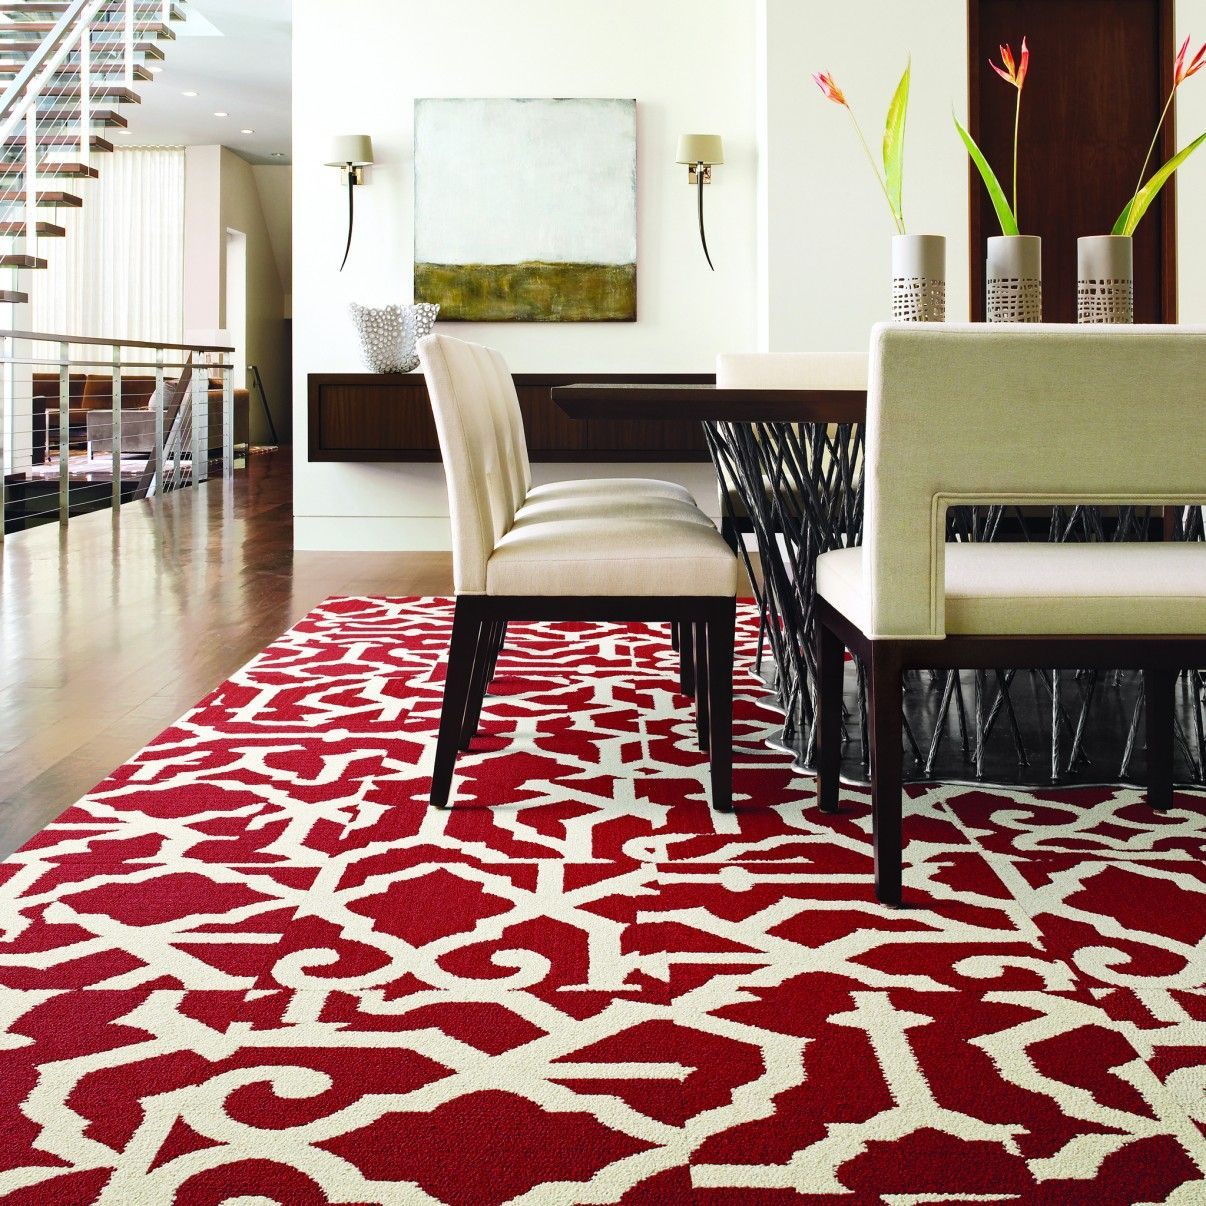 buy lasting grateness red carpet tile by flor how to style a red lacquer kitchen carpet. Black Bedroom Furniture Sets. Home Design Ideas